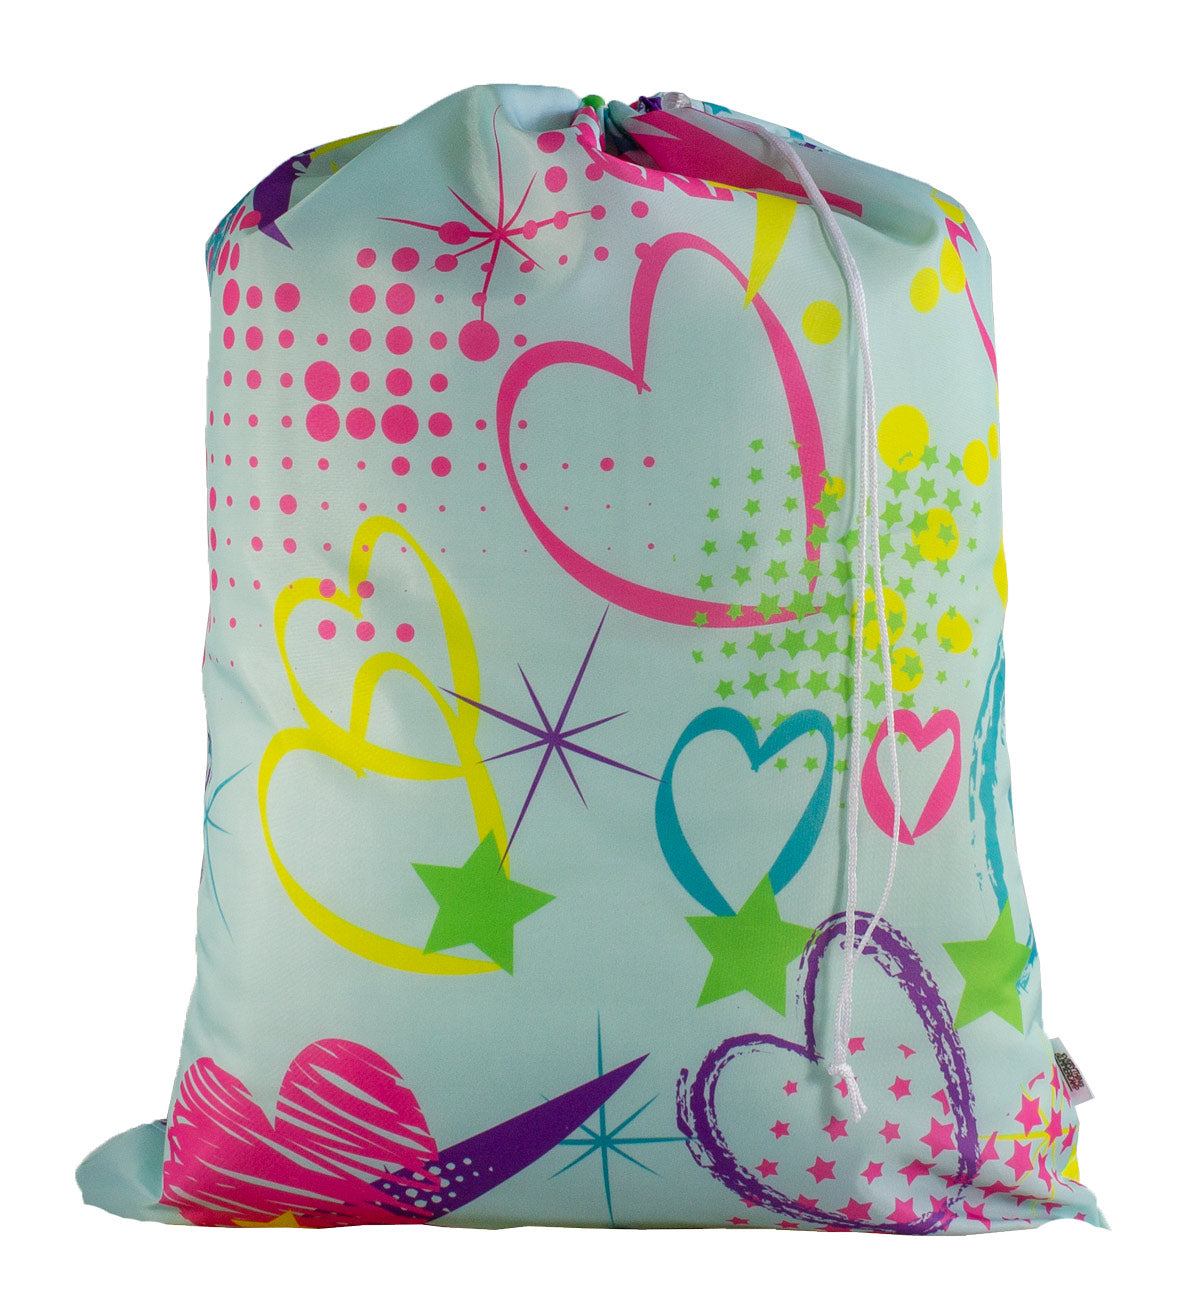 Designer Laundry Bag - Teen Graffiti